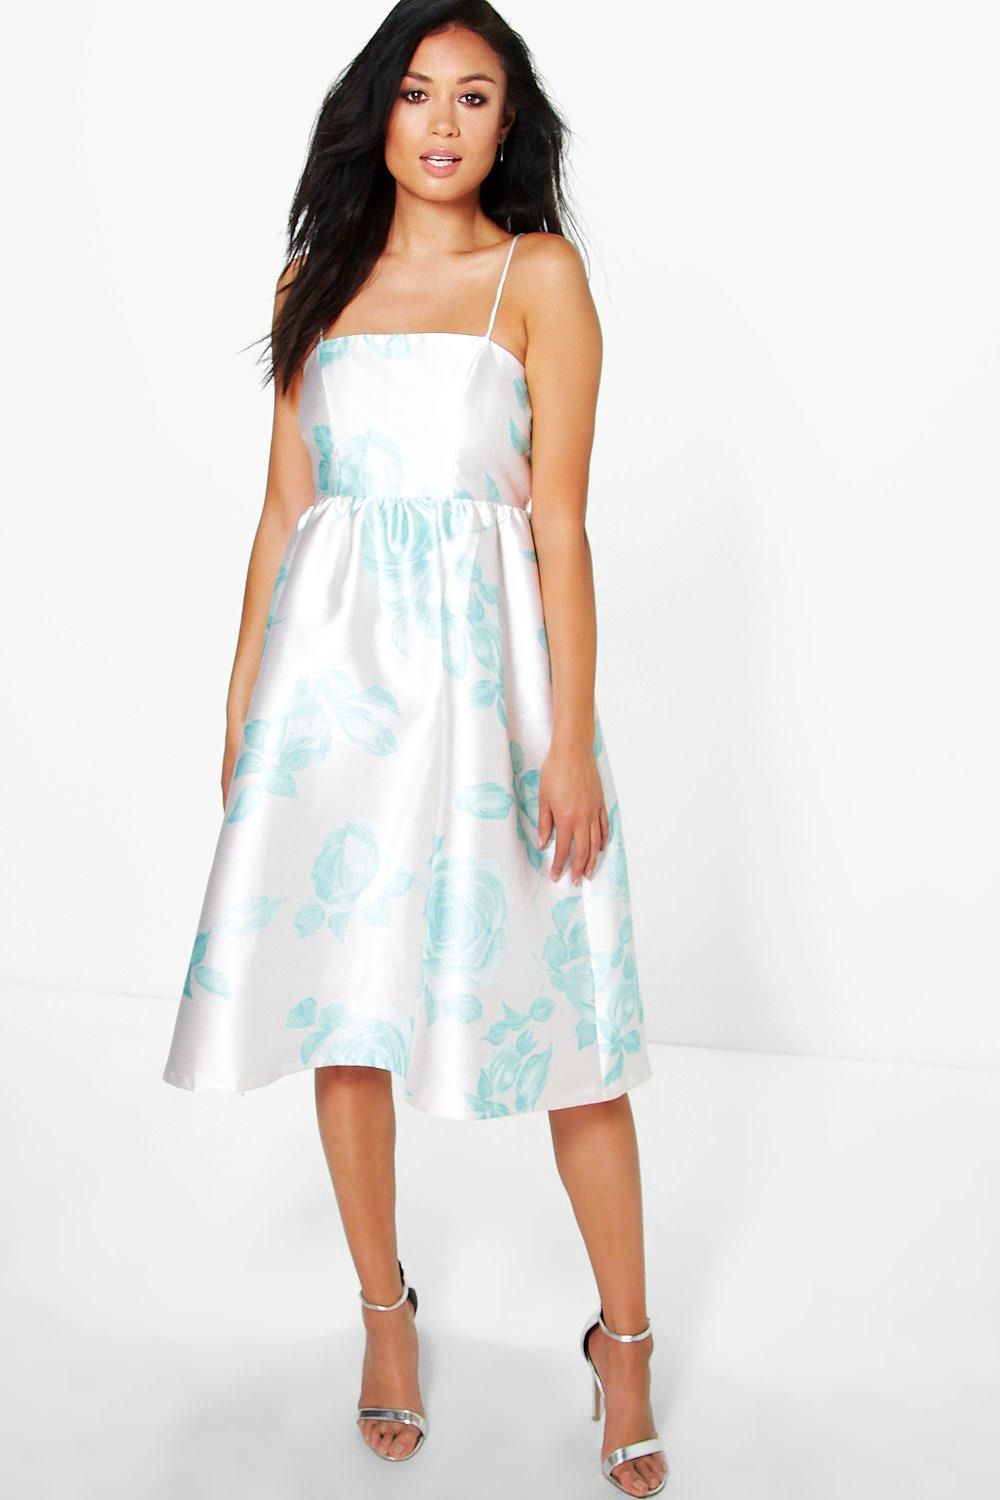 Boutique Ela Floral Sateen Strappy Midi Dress - Boohoo  ba9899ac0